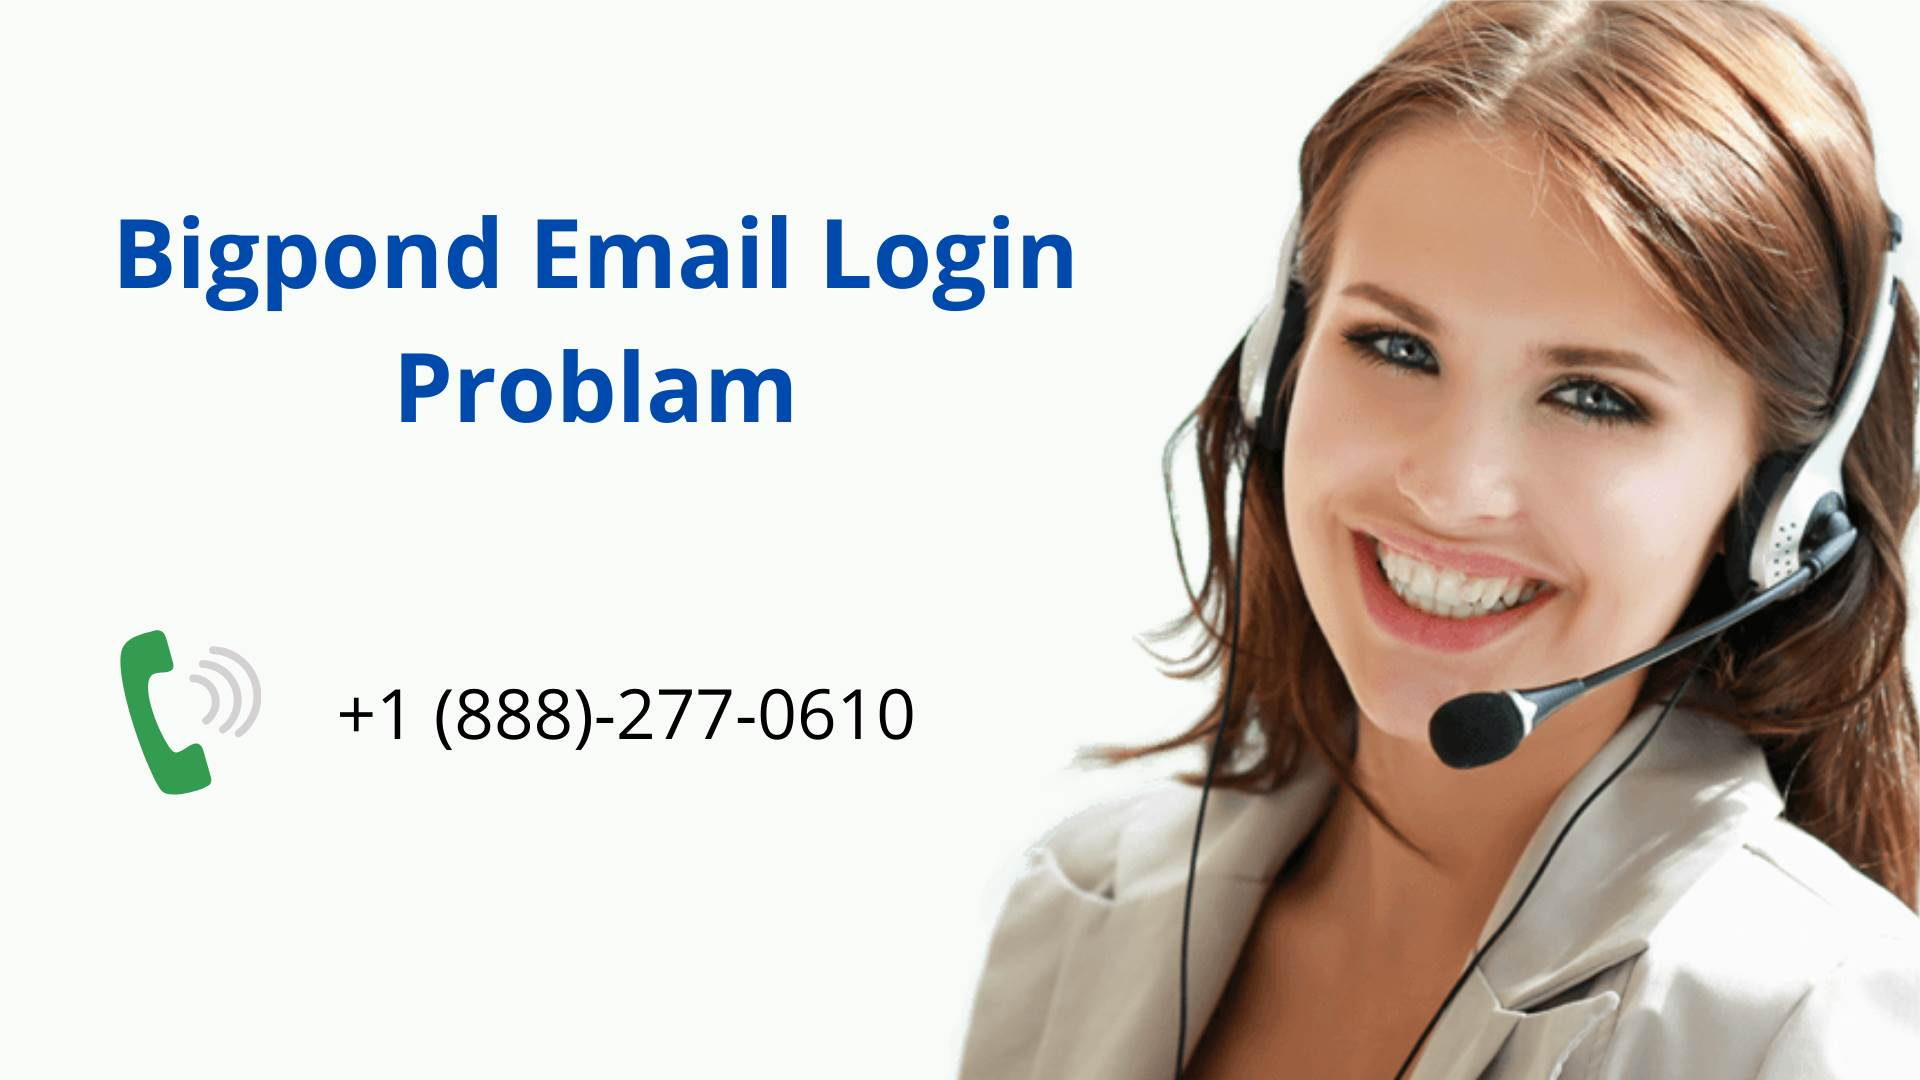 Bigpond Email Supports Bigpond Hacked Account Recovery